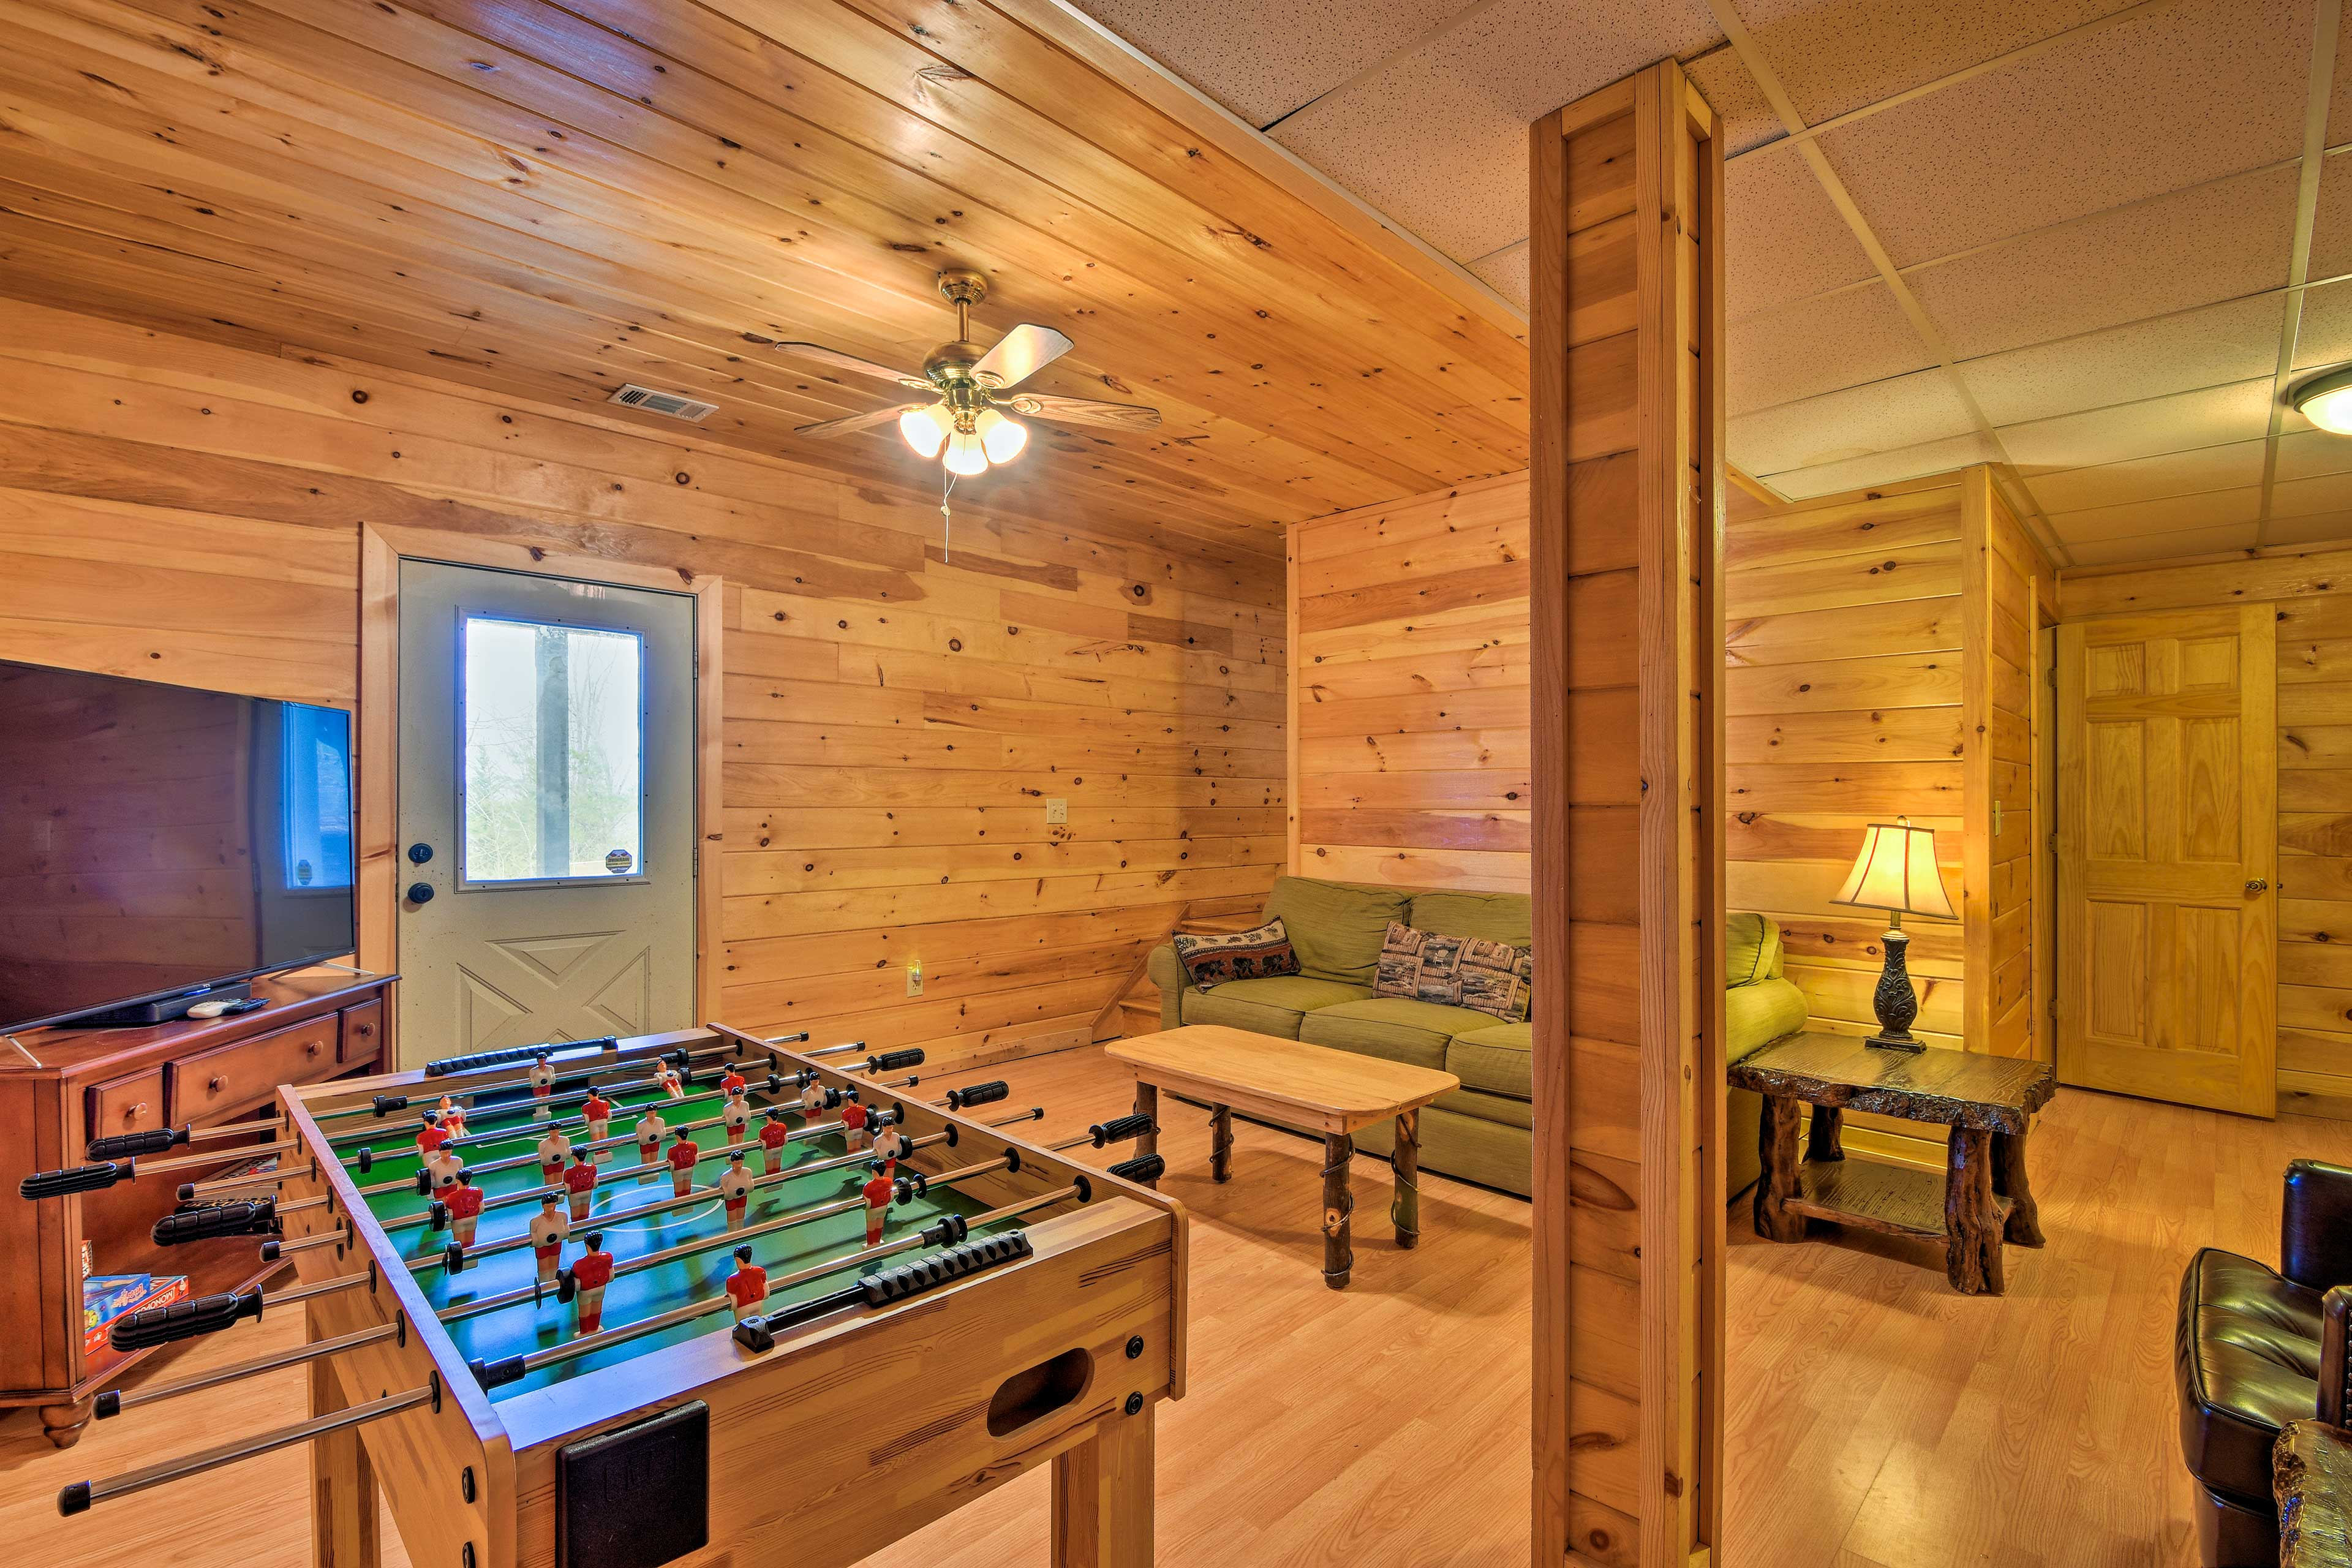 Provided board games and a foosball table complete the room!